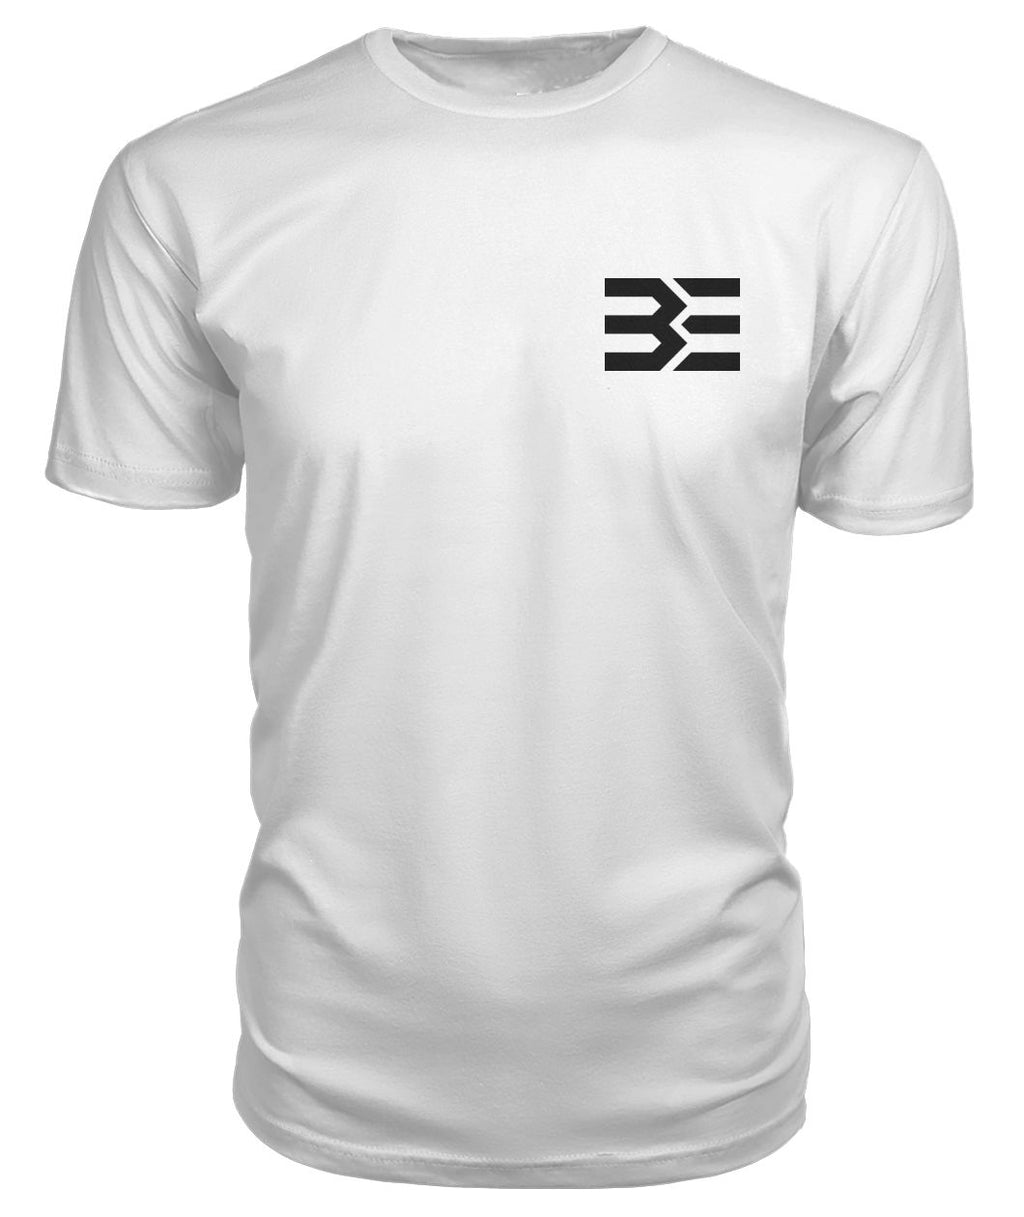 Bliss Logo T-shirt - White/Black Premium Unisex Tee